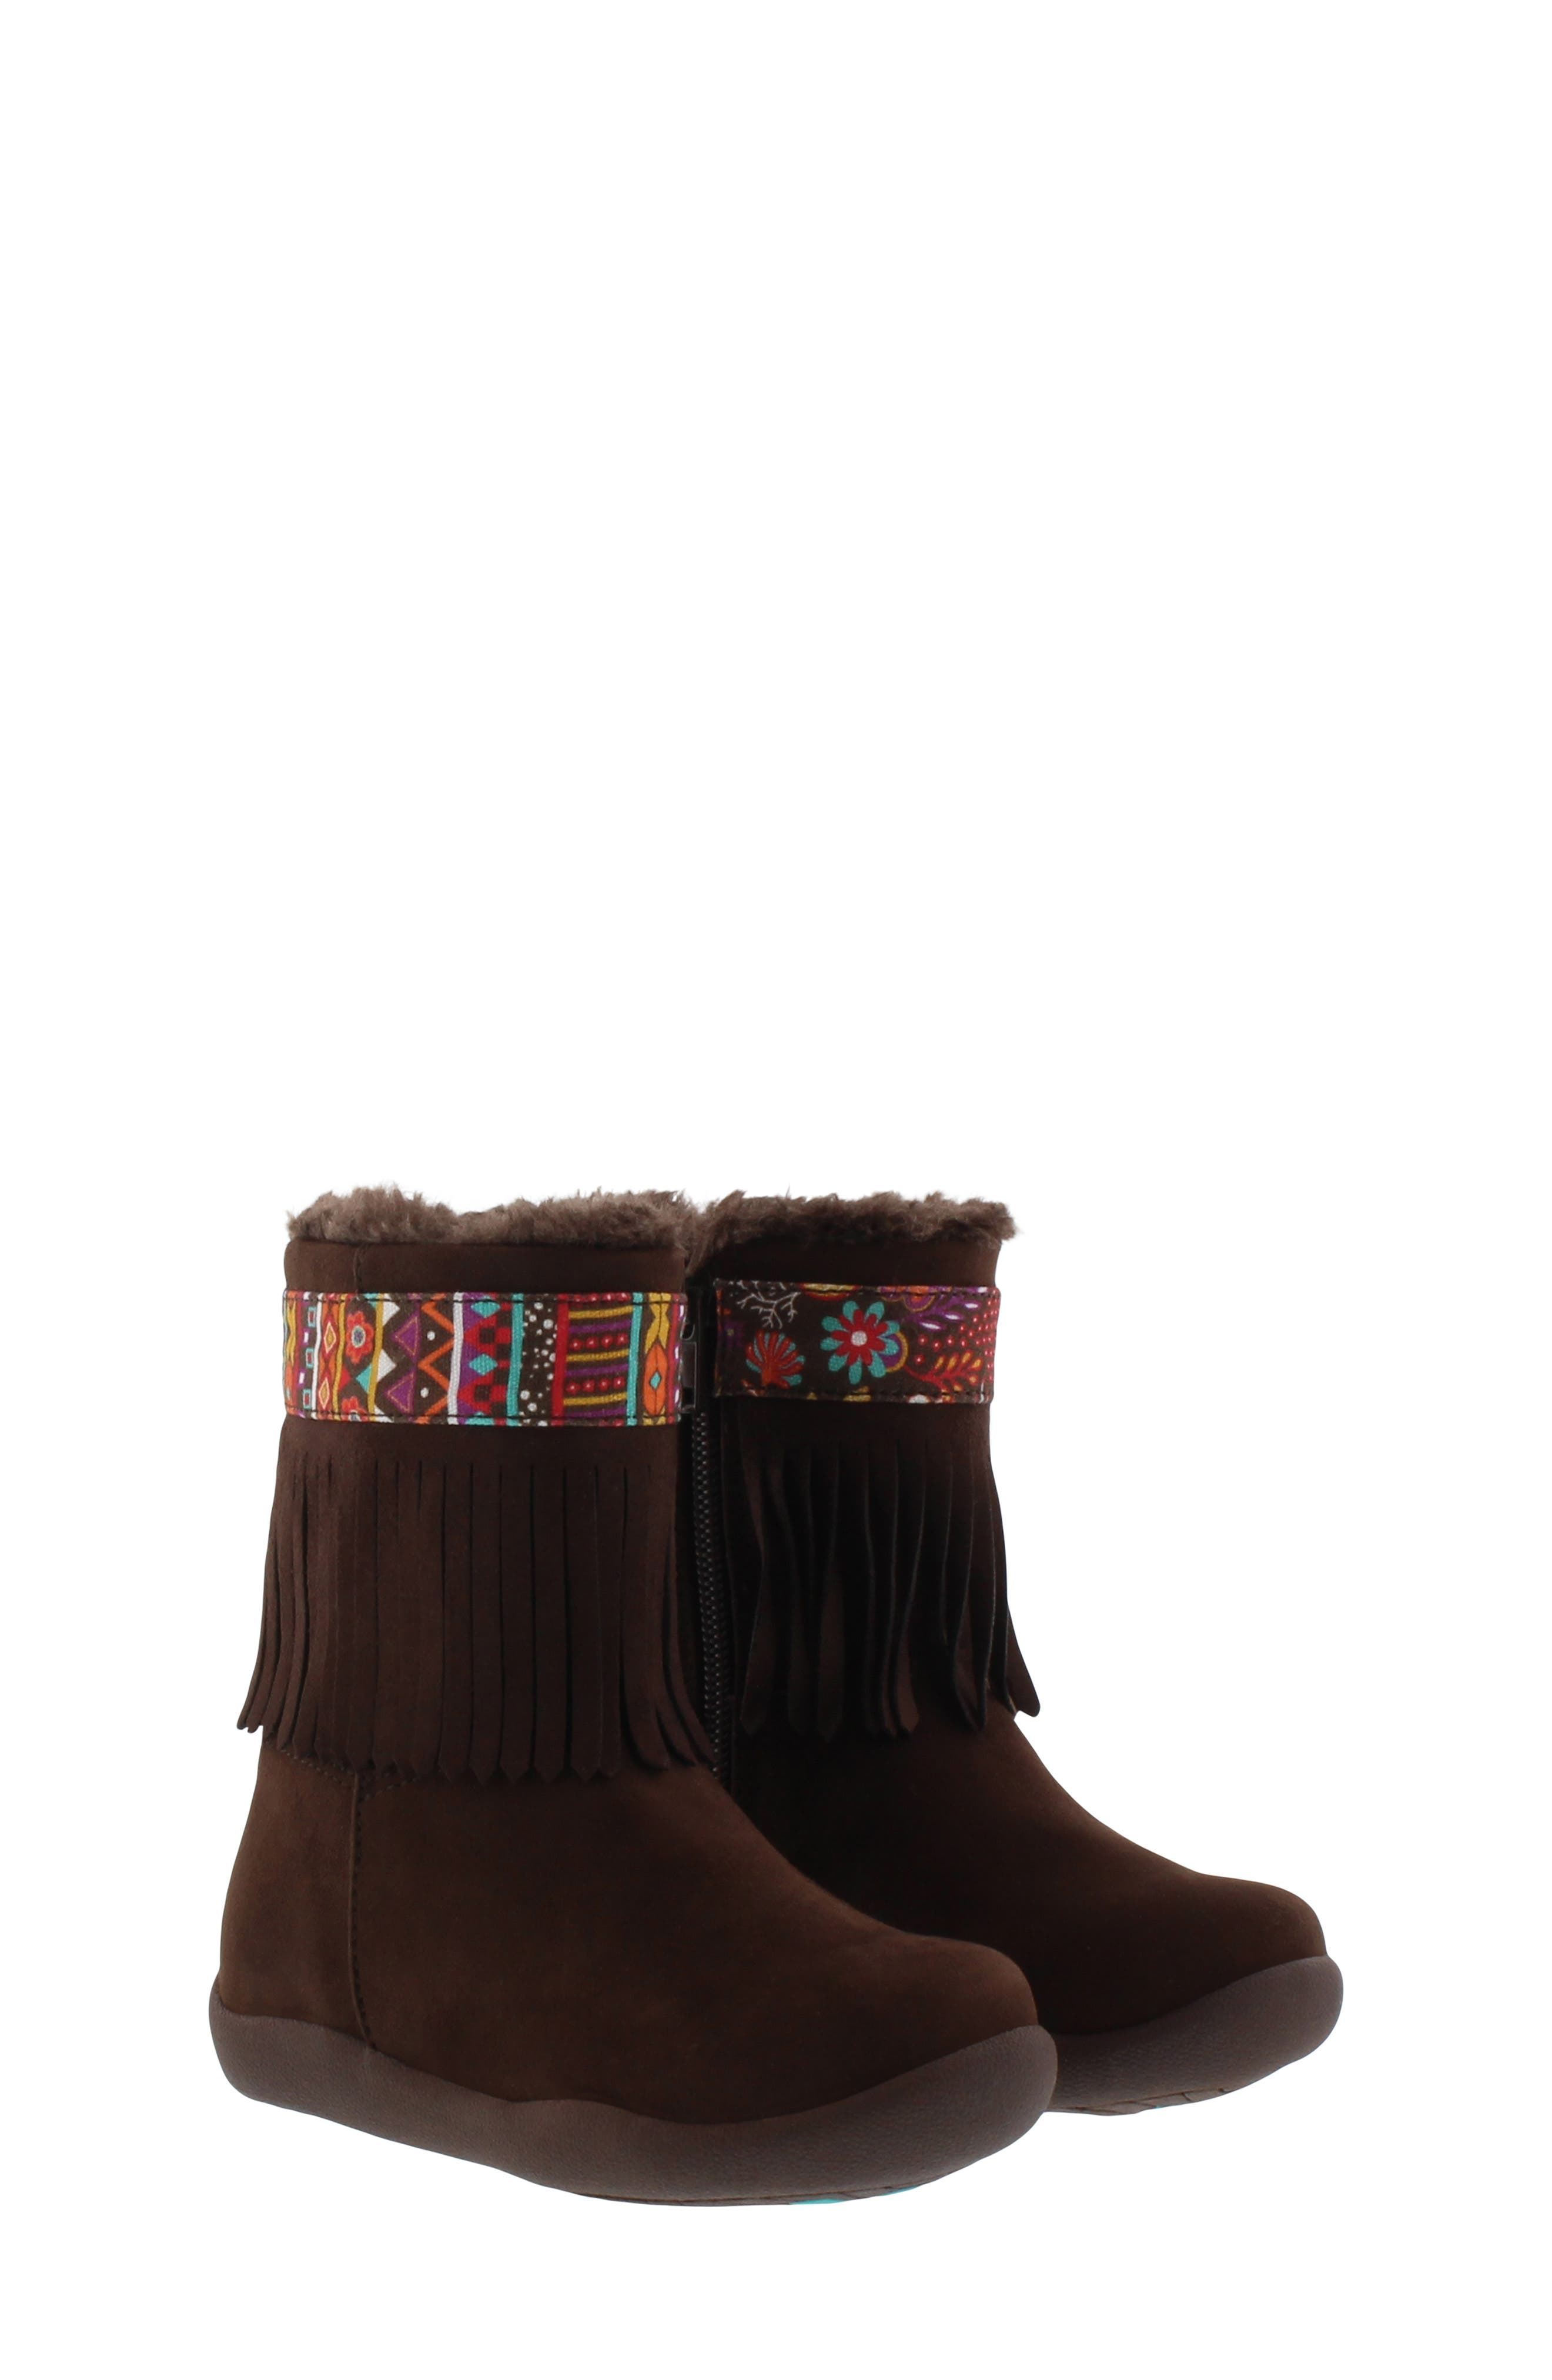 CHOOZE Faux Fur Fringed Hope Bootie, Main, color, BROWN